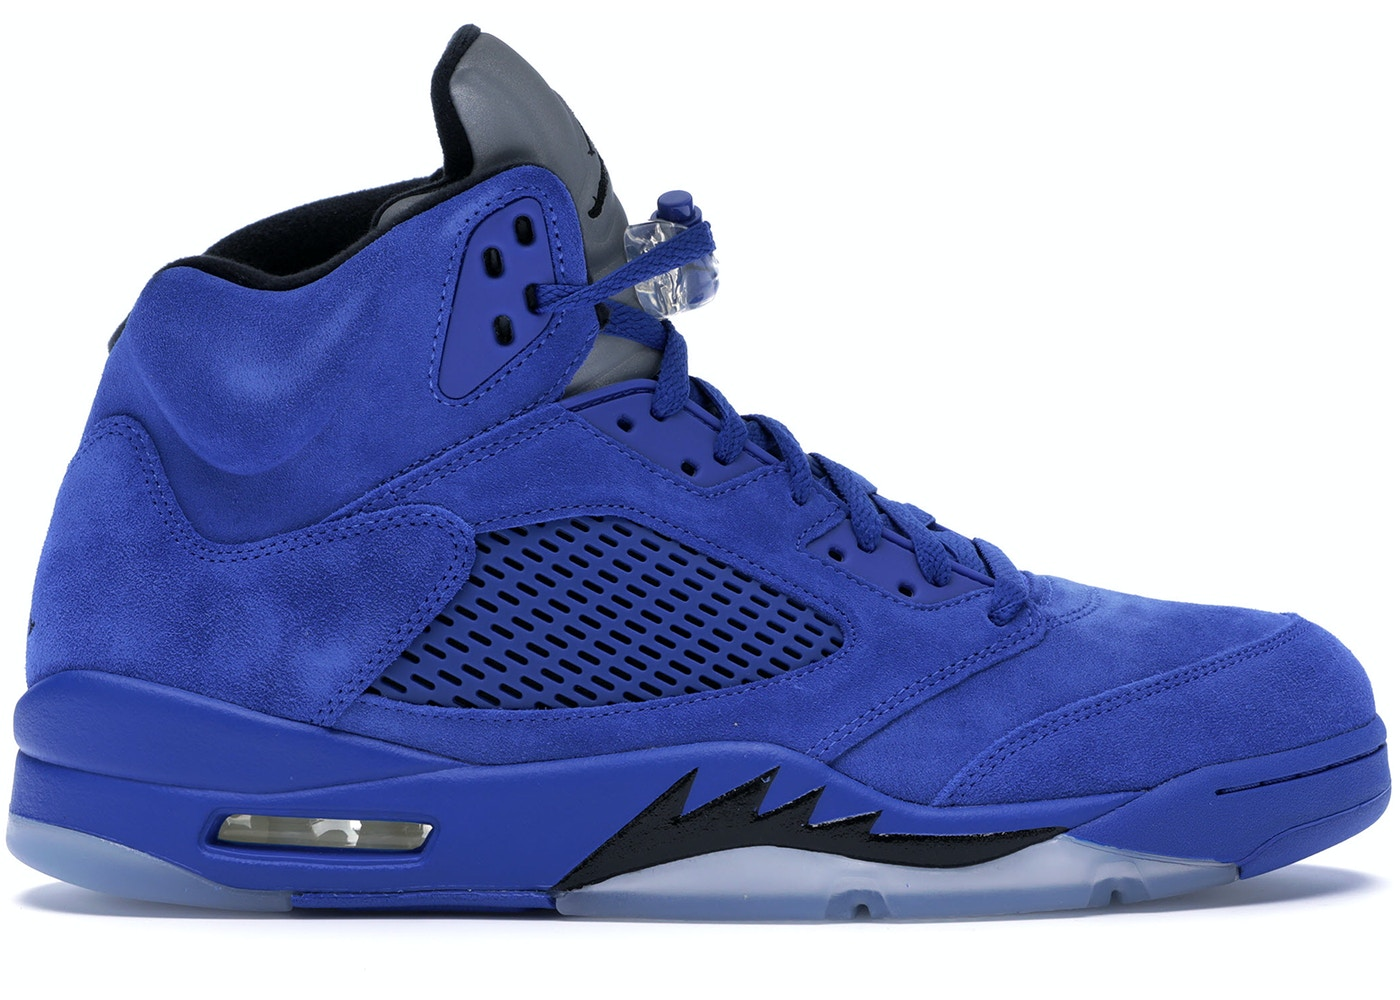 53086cd273b825 Buy Air Jordan 5 Shoes   Deadstock Sneakers